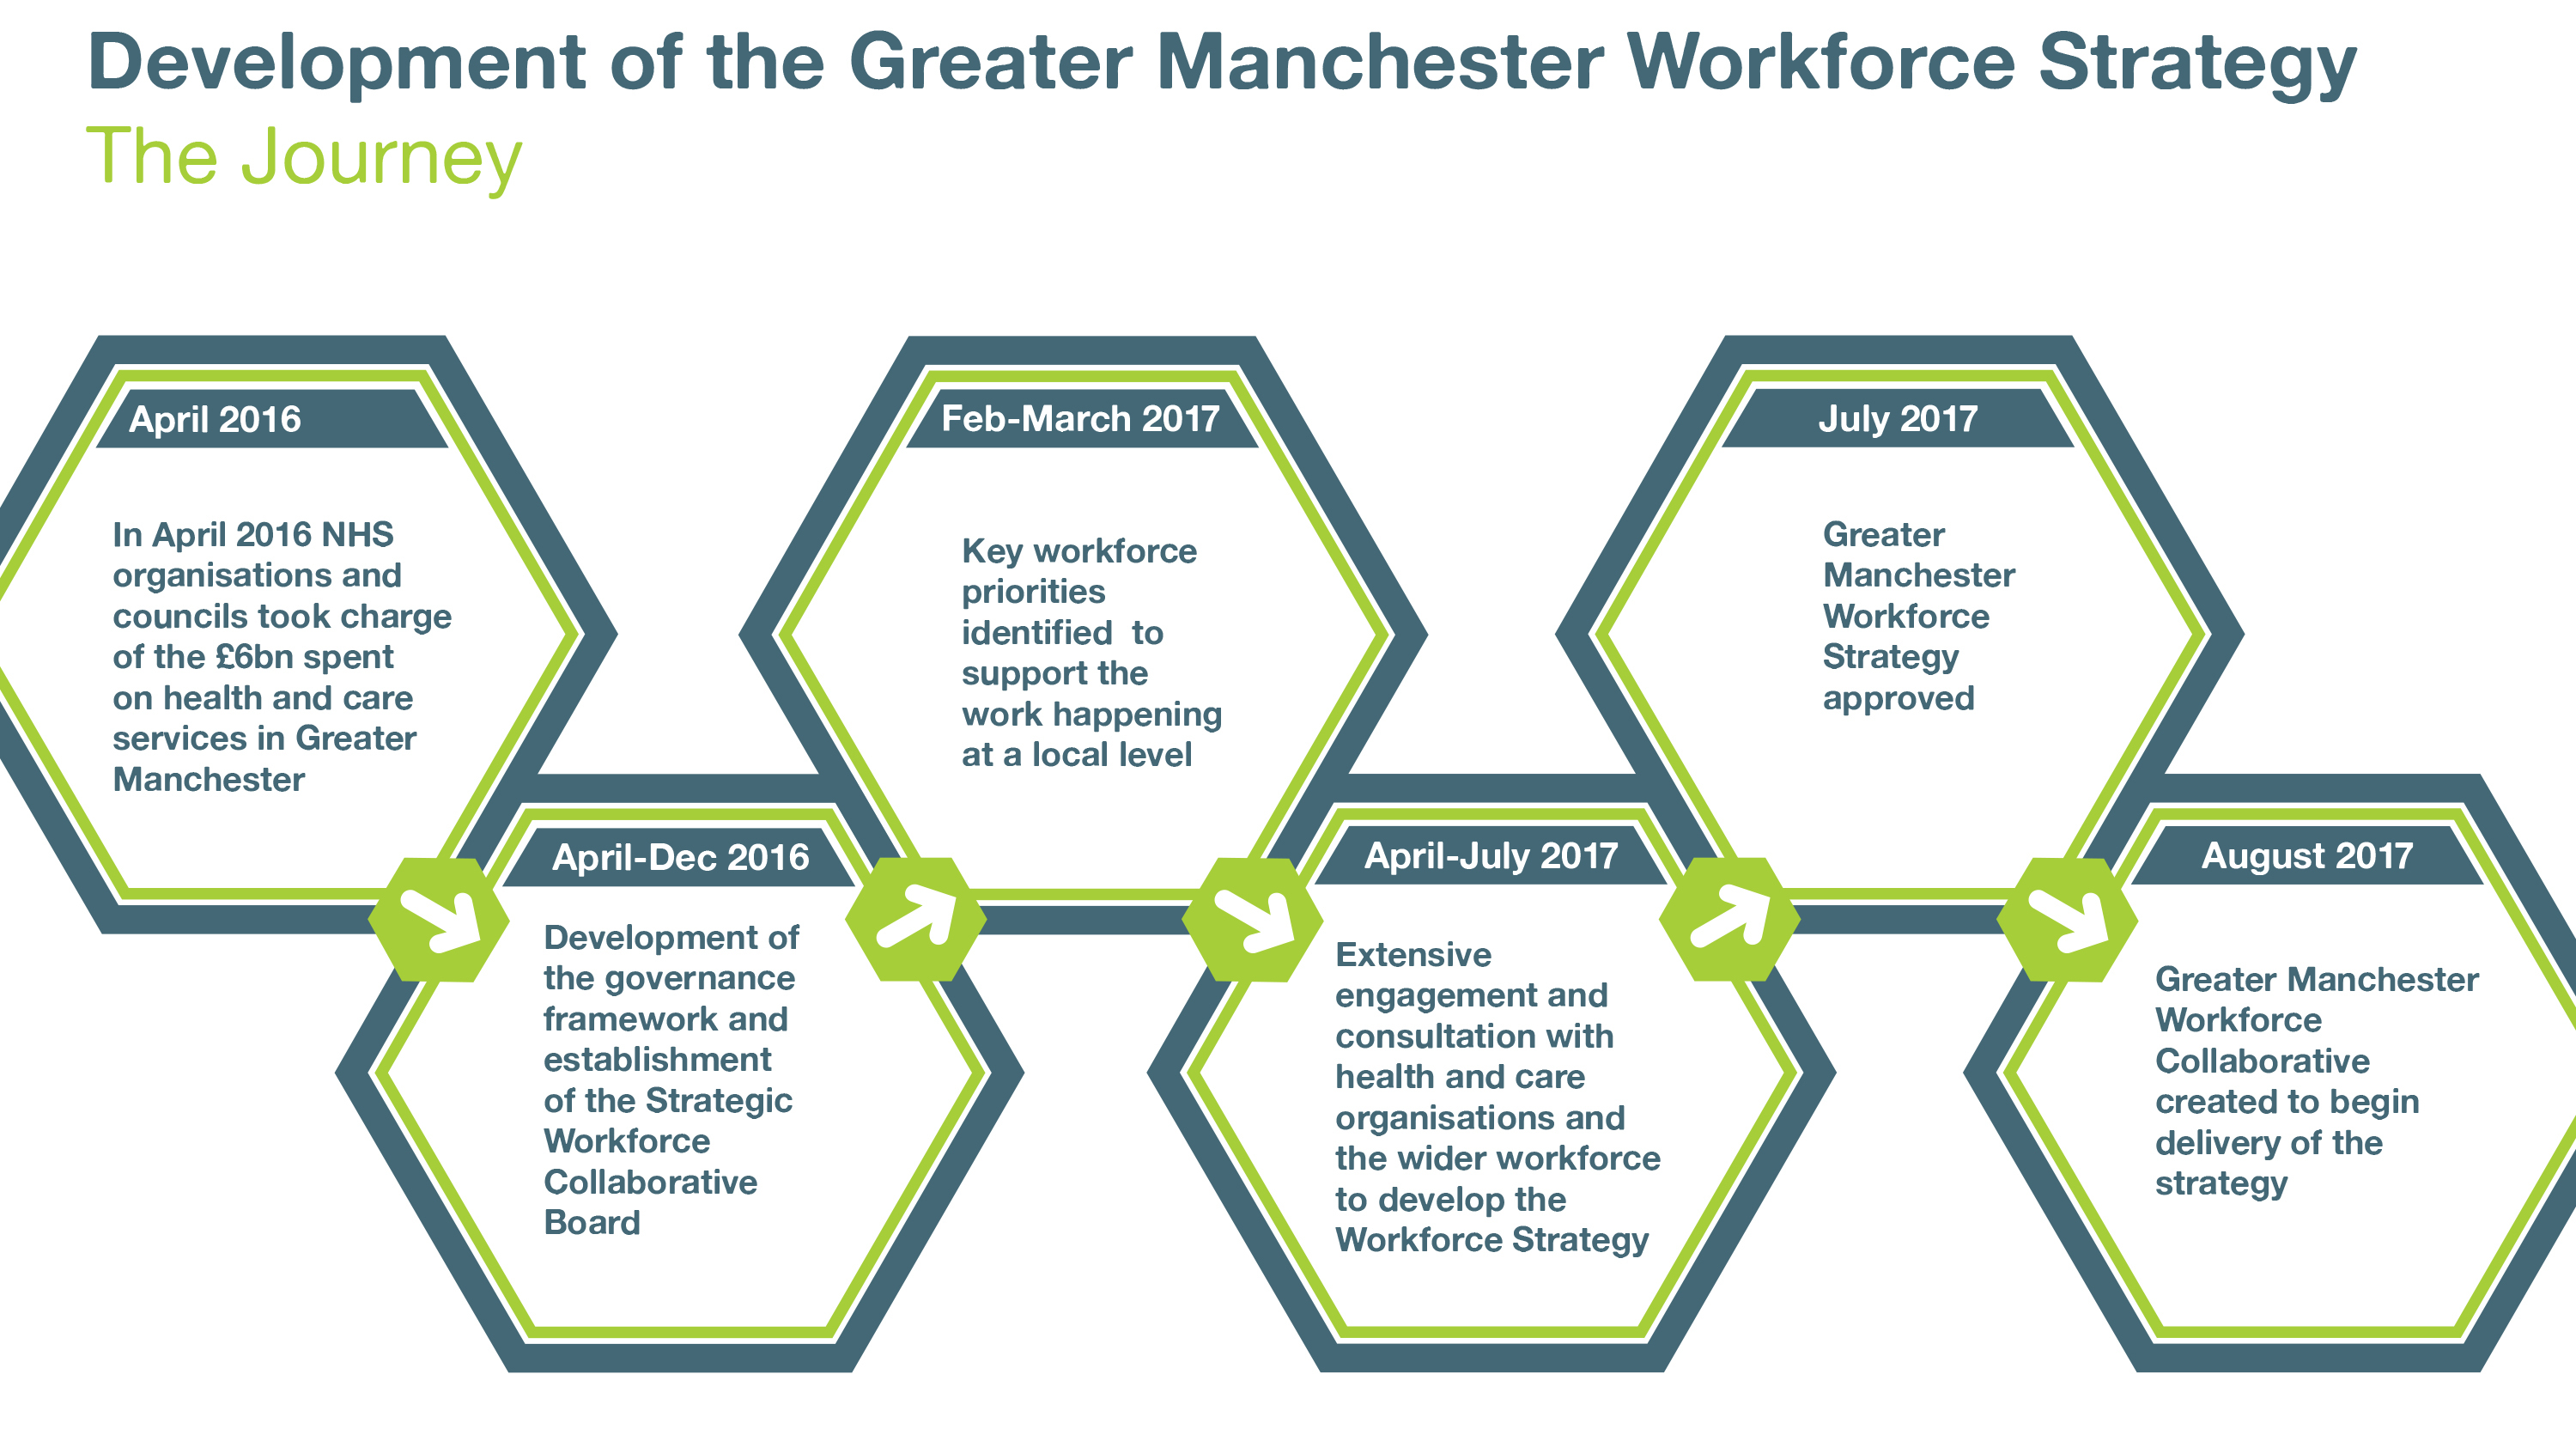 Development of the Greater Manchester Workforce Strategy - The Journey